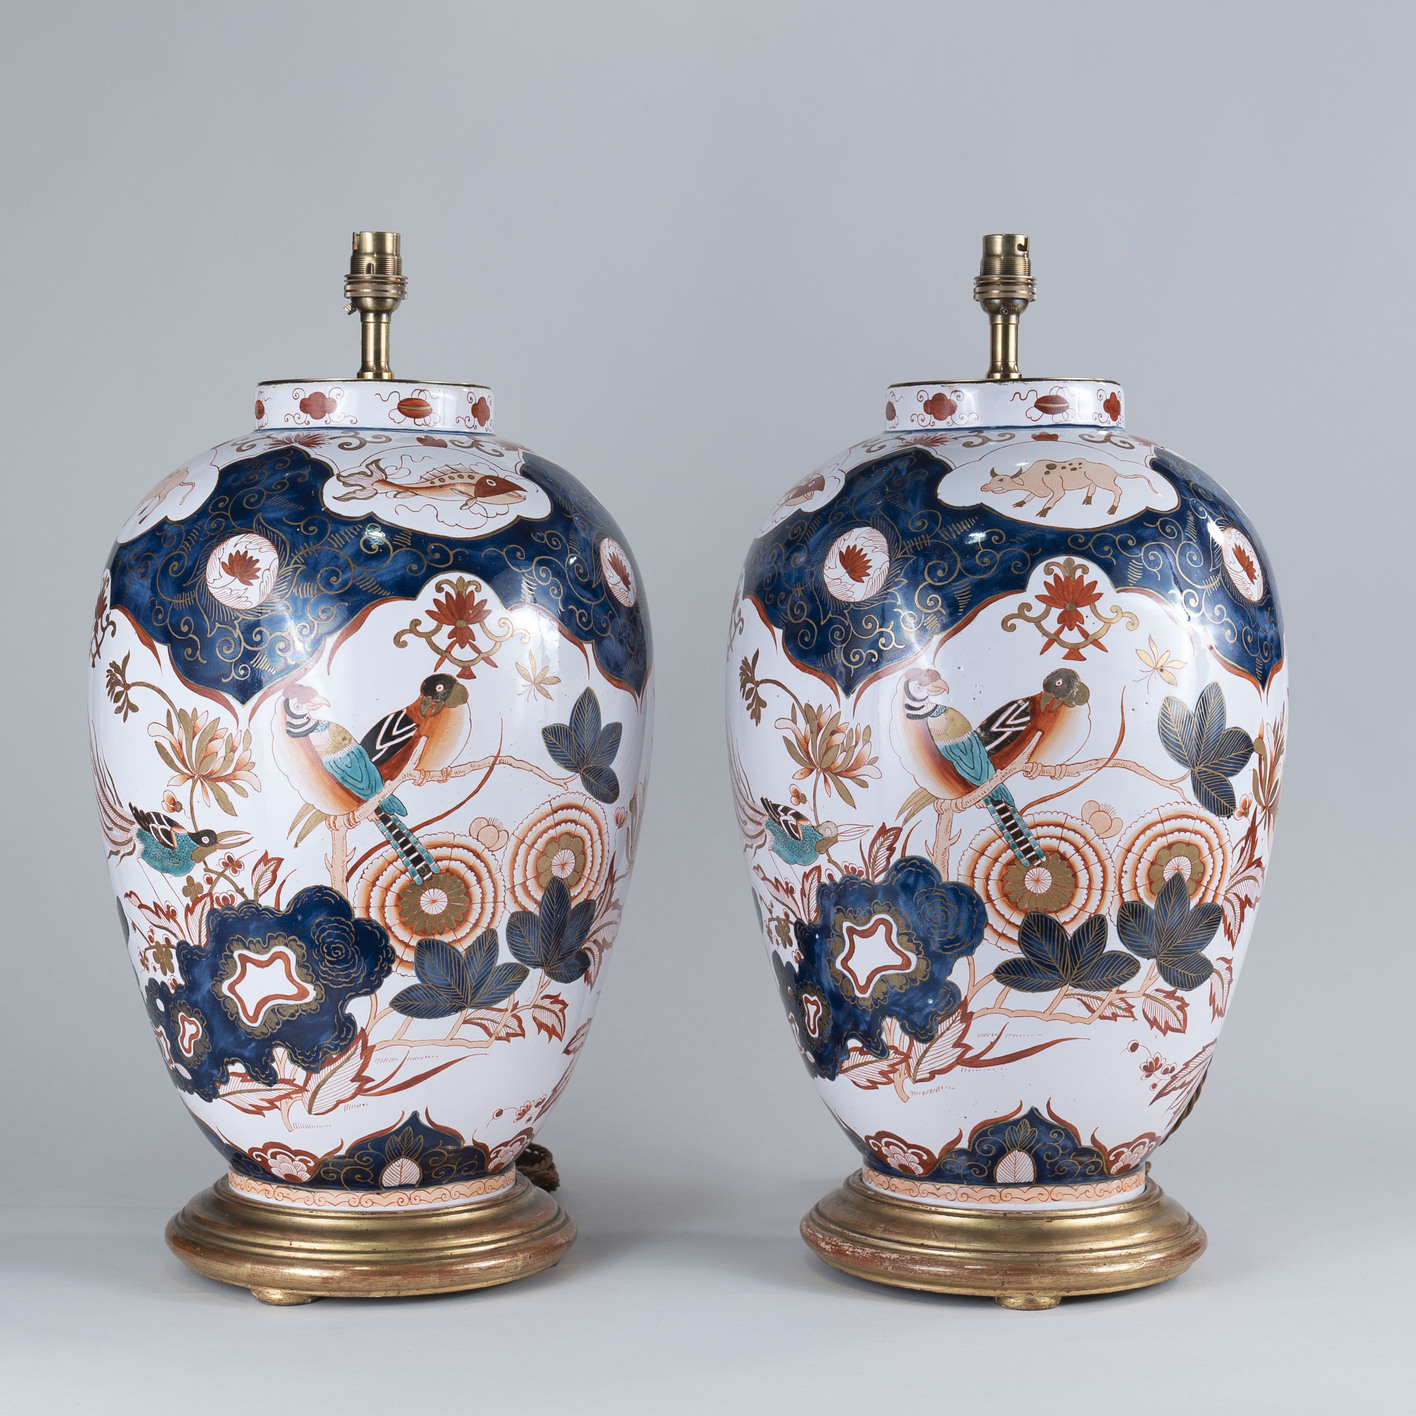 A Large Pair of Early 19th Century Dutch Delft Vases, Lamped